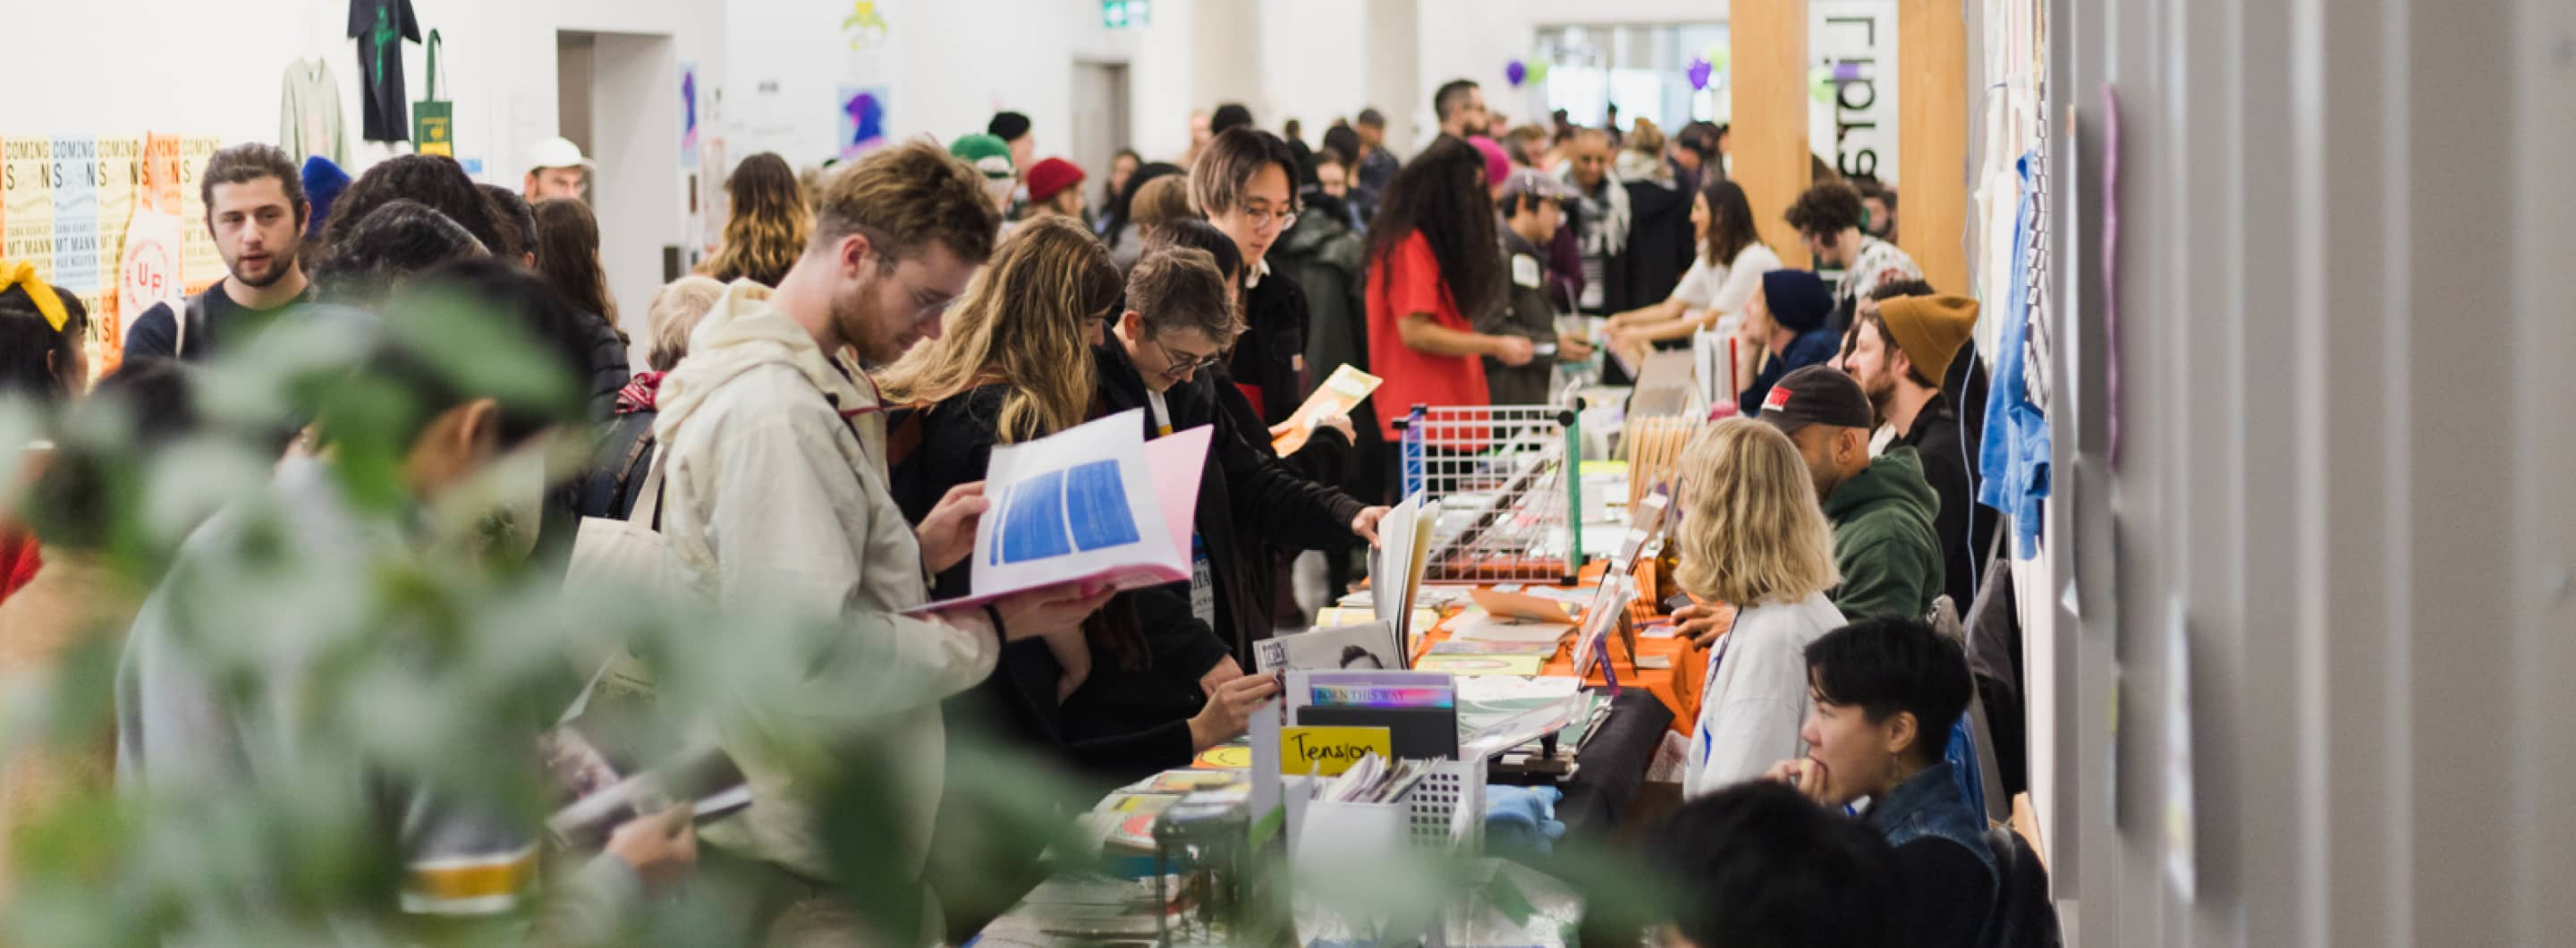 Photograph from VABF 2019 of the Vancouver Art Book Fair hallway at Emily Carr University, attendees look at exhibitor tables, a plant is out of focus in the foreground.